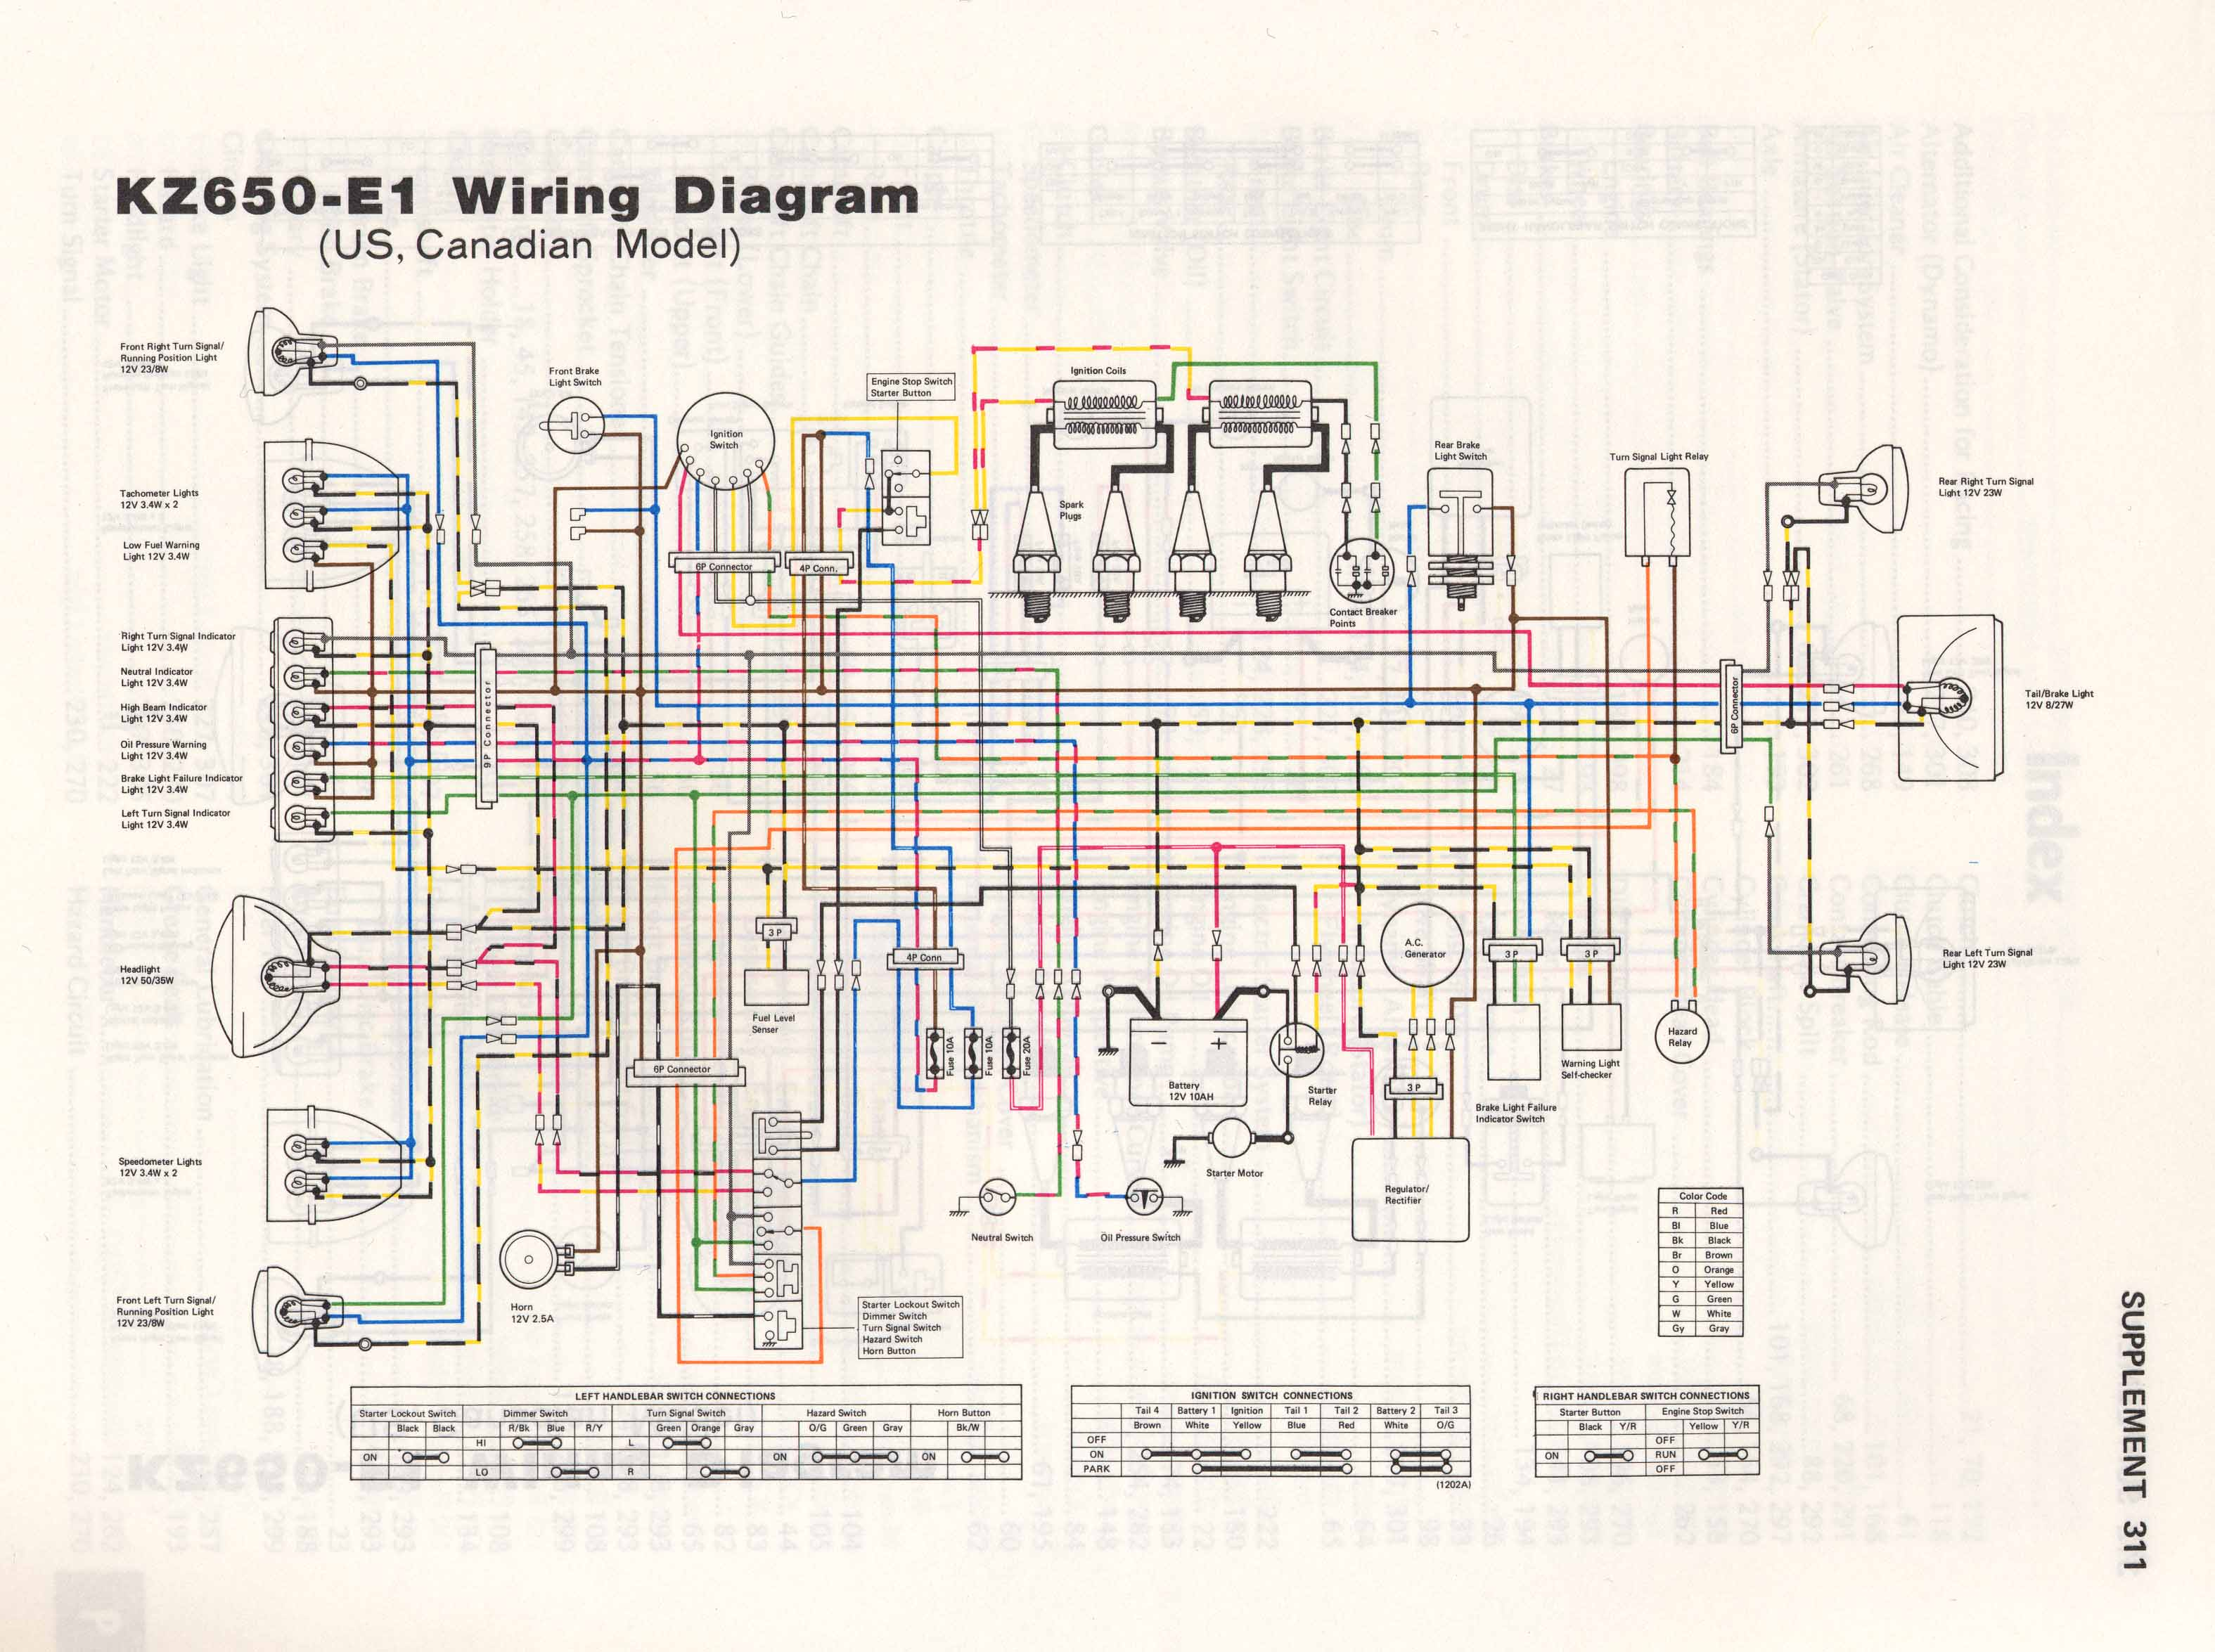 KZ650 E1 kz650 info wiring diagrams kawasaki zx9r e1 wiring diagram at readyjetset.co